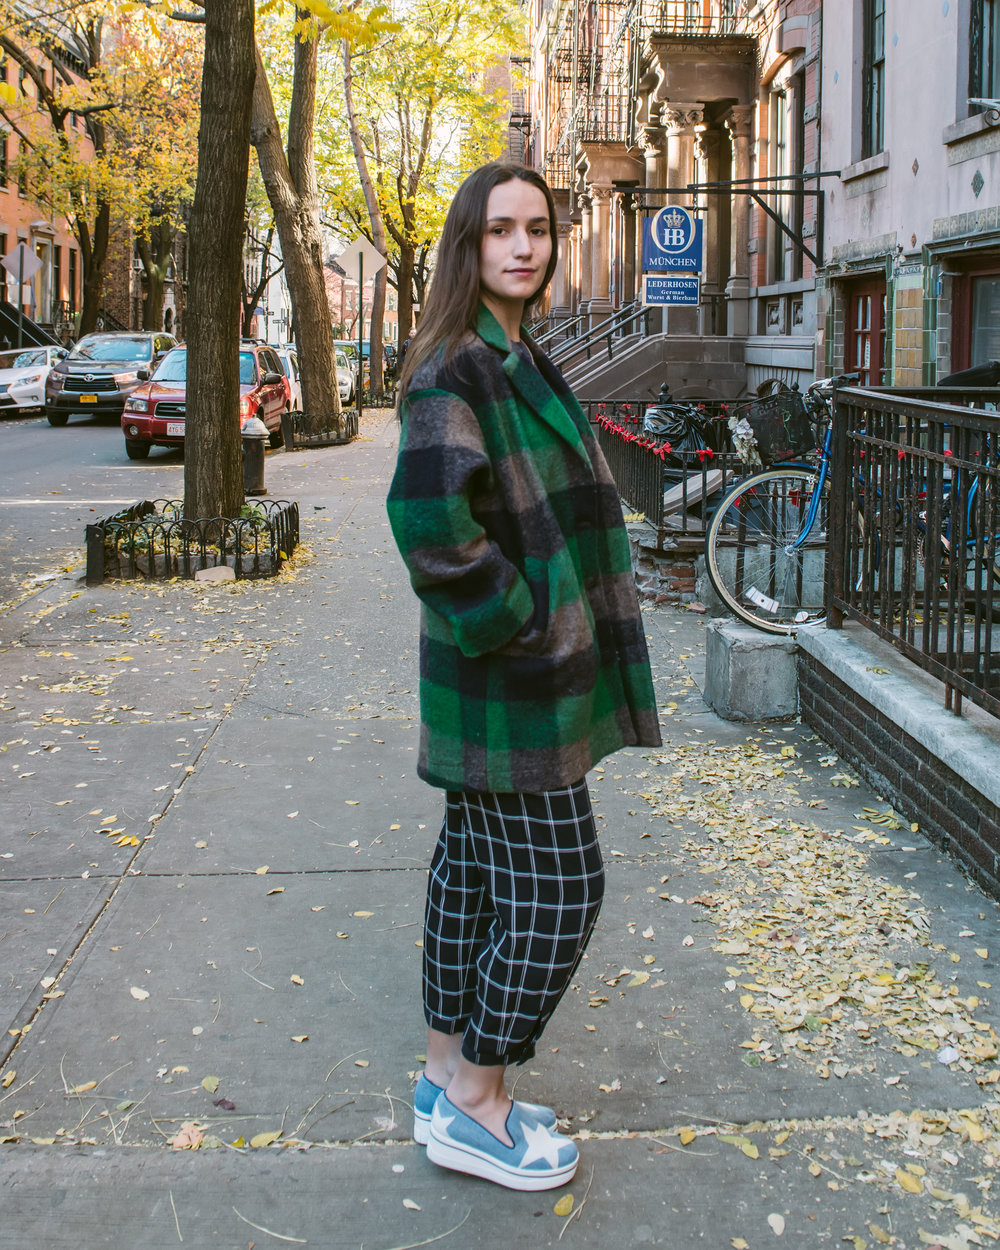 SOPHIE BICKLEY YIN 2MY YANG SISTER FASHION BLOGGERS PLAID POST